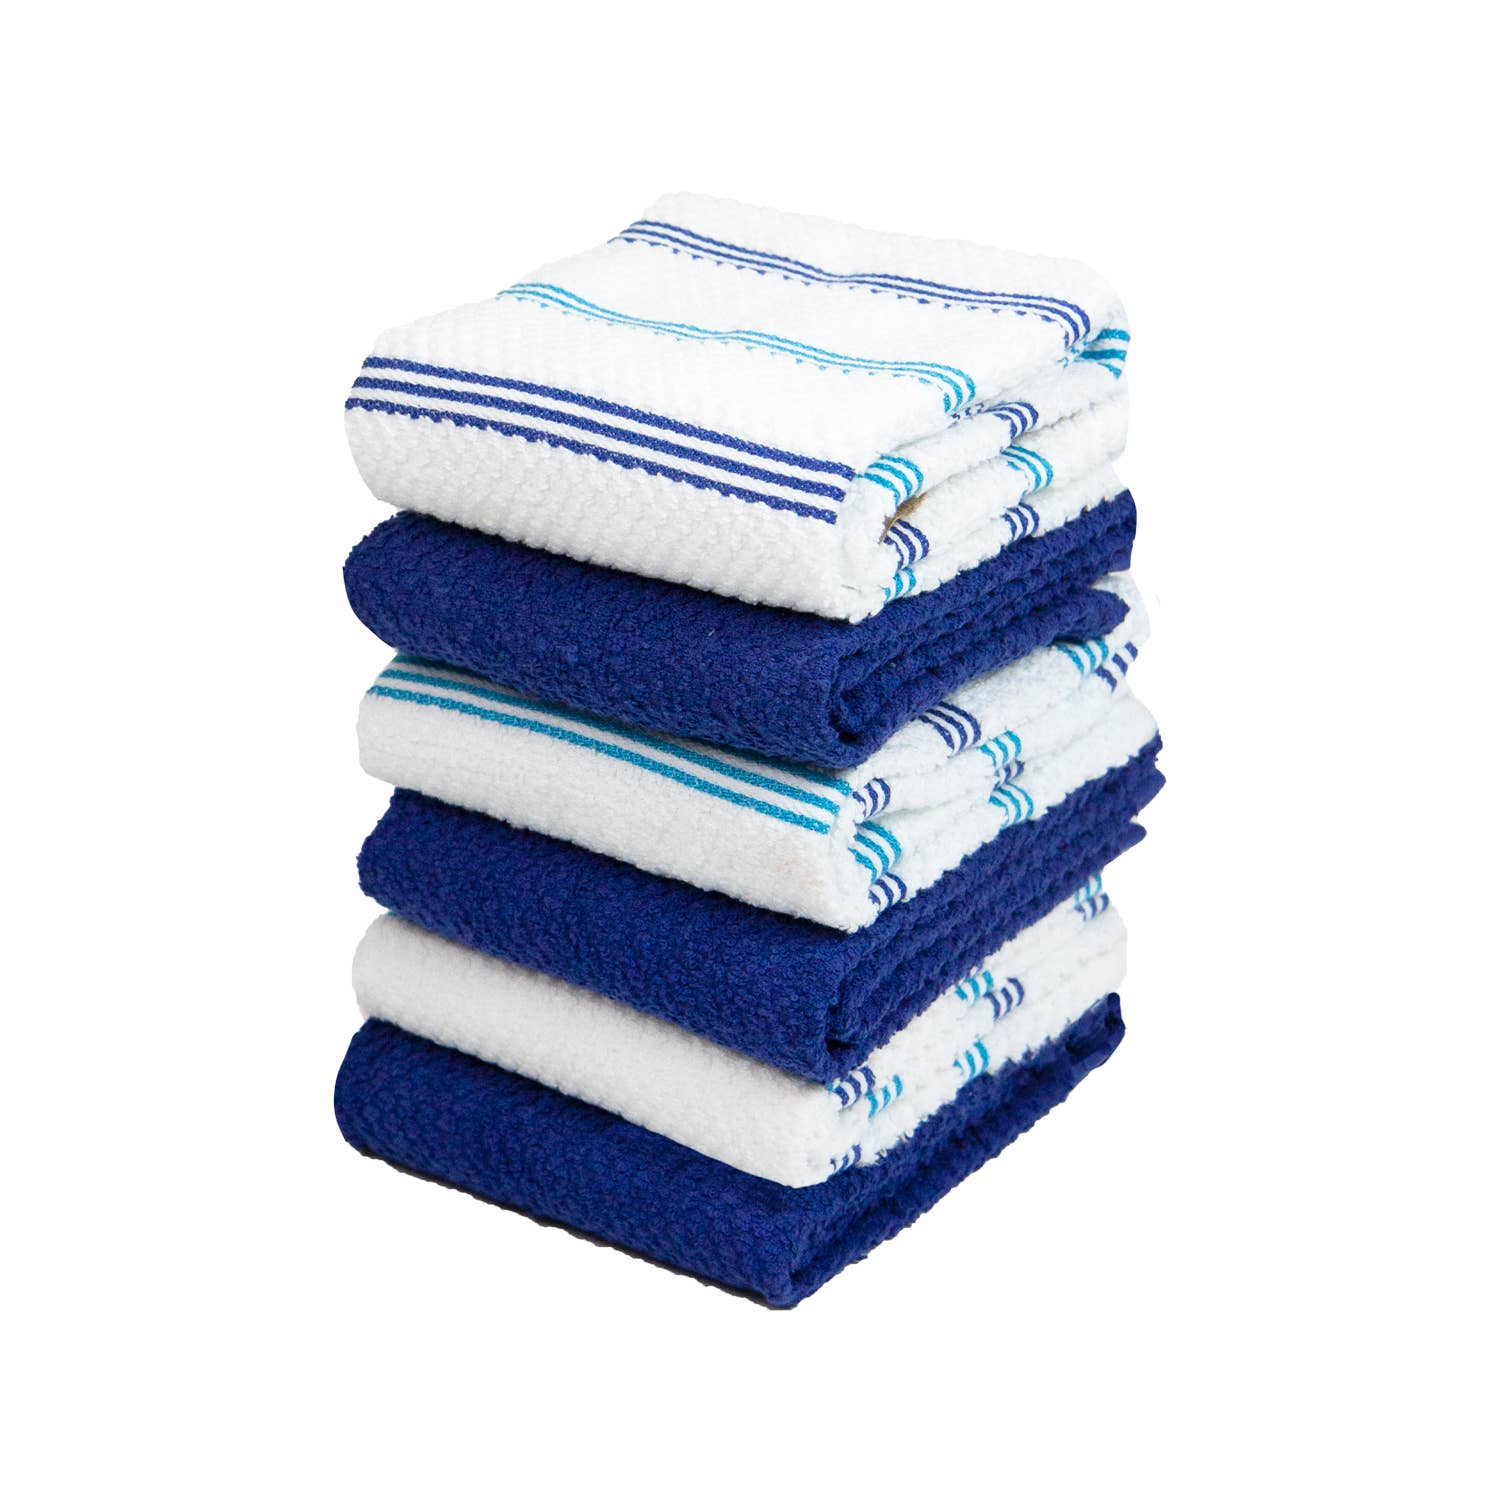 Premier Kitchen Towels 6pk